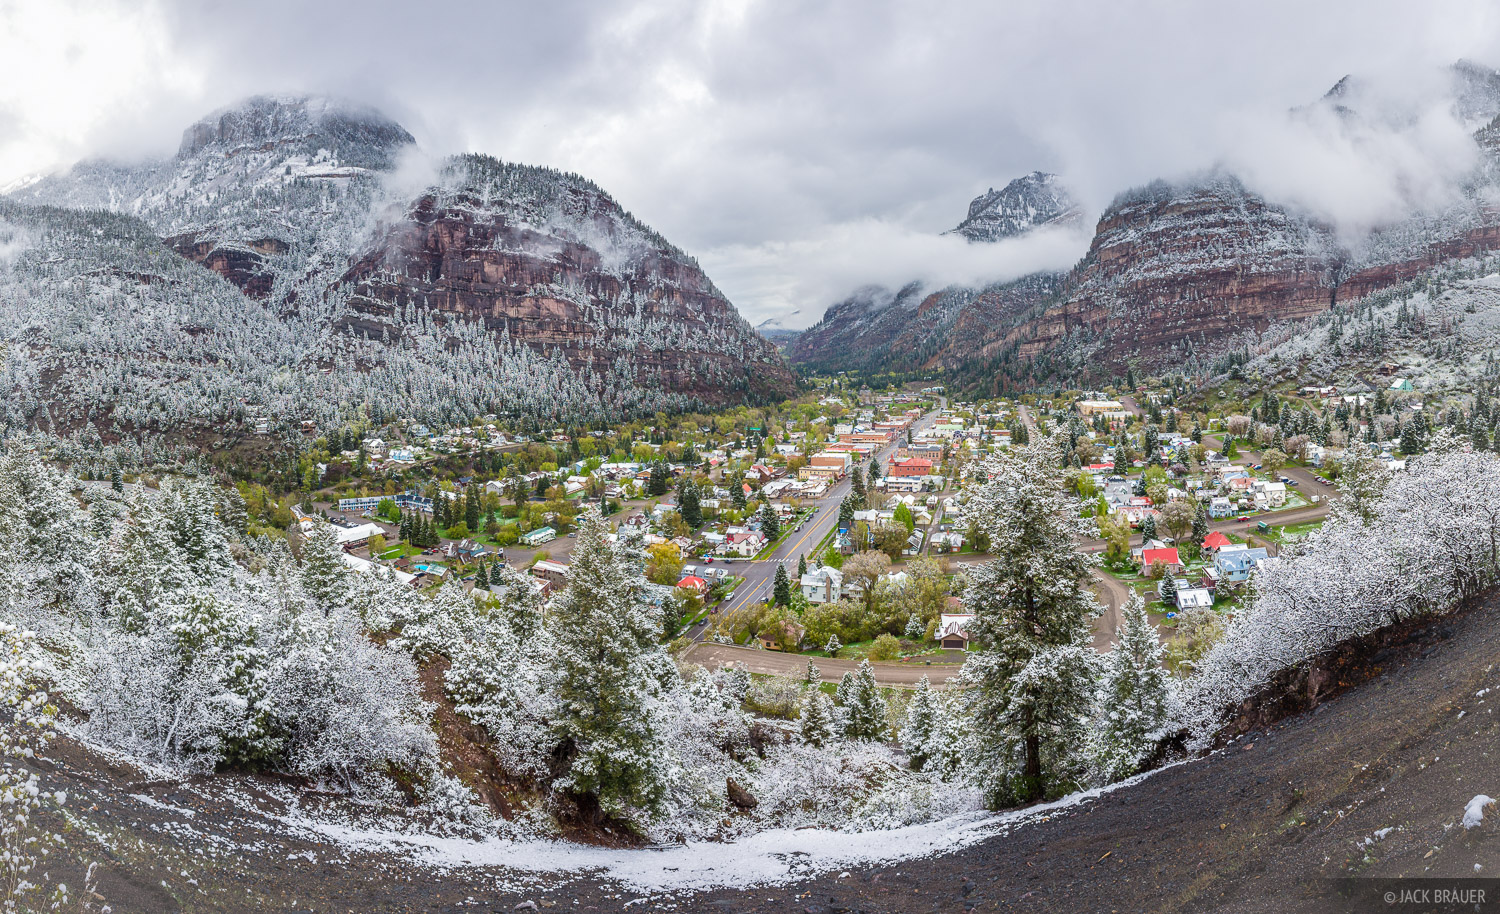 As trees bloom green in the town of Ouray, a May snowstorm cakes the surrounding mountains in powder.